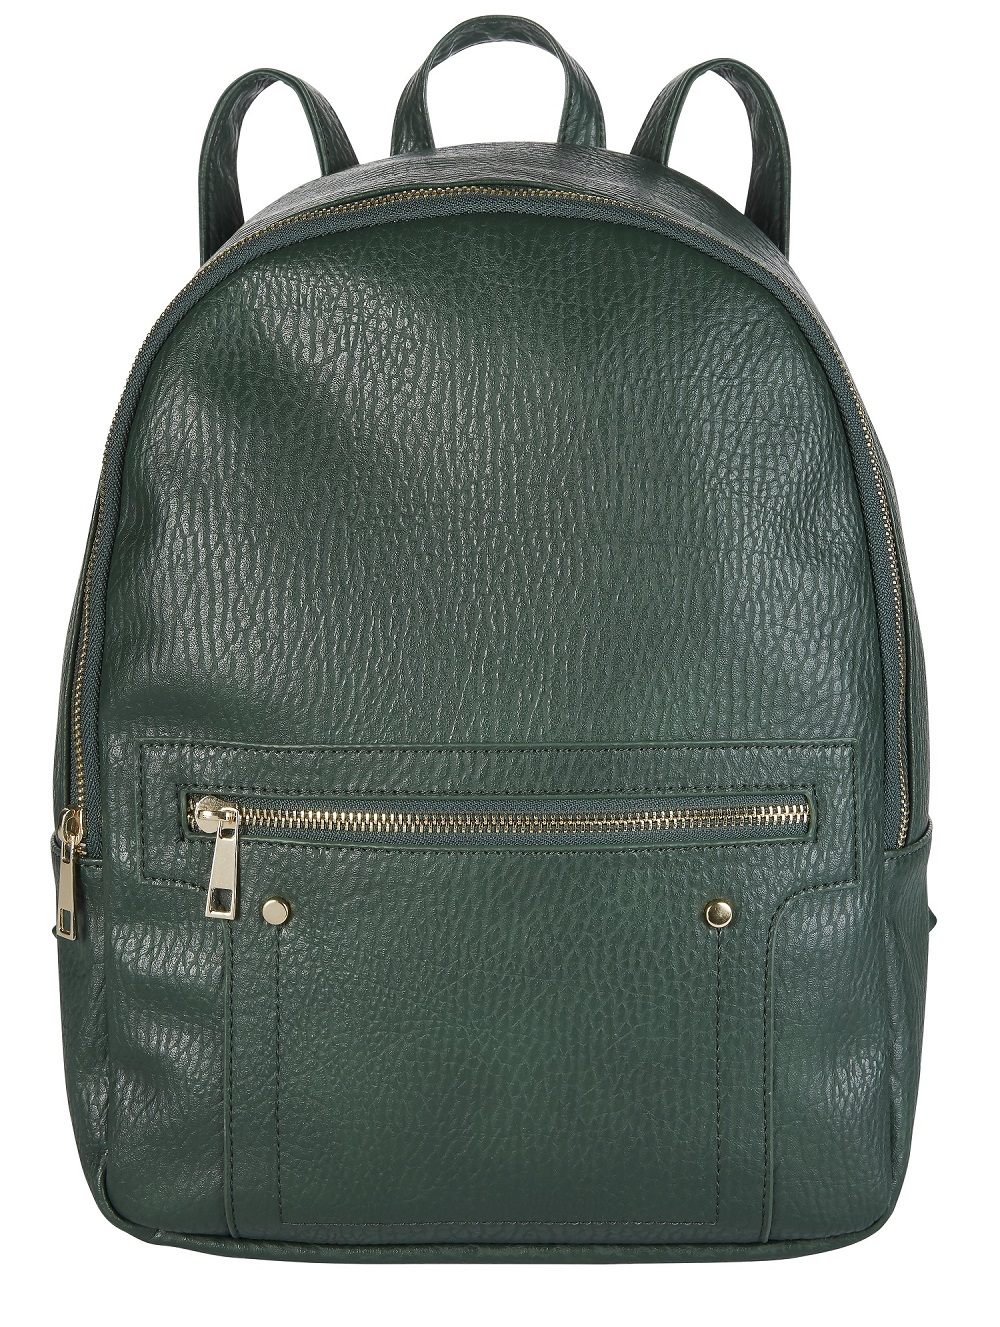 Forest Green Backpack £16 TU Clothing